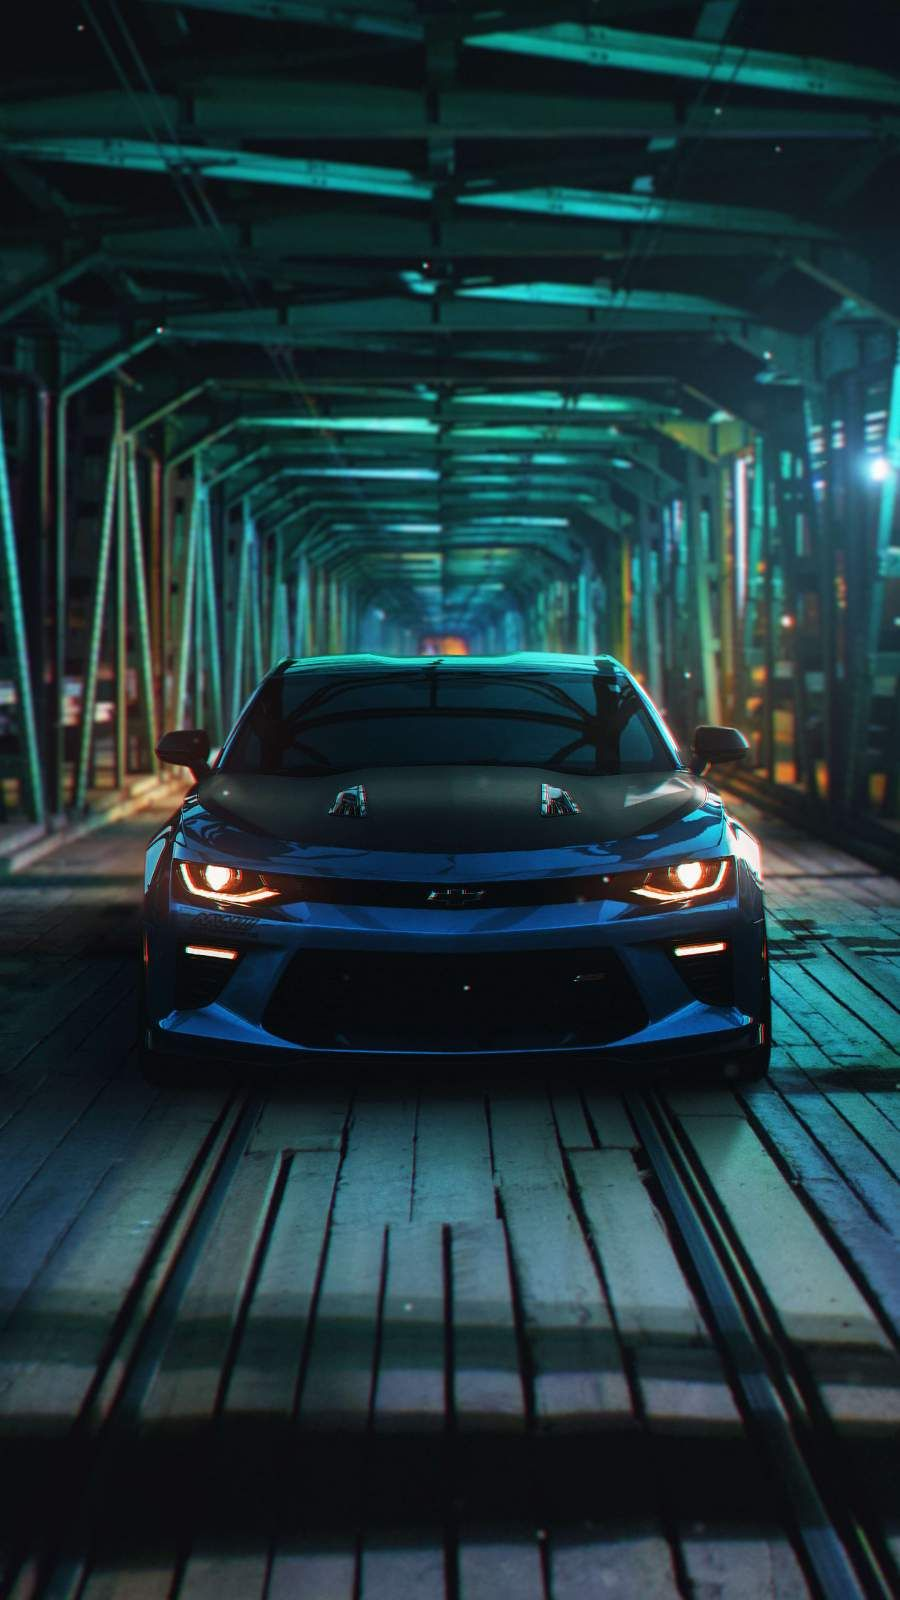 Chevrolet Camaro Iphone Wallpaper In 2020 Camaro Xiaomi Wallpapers